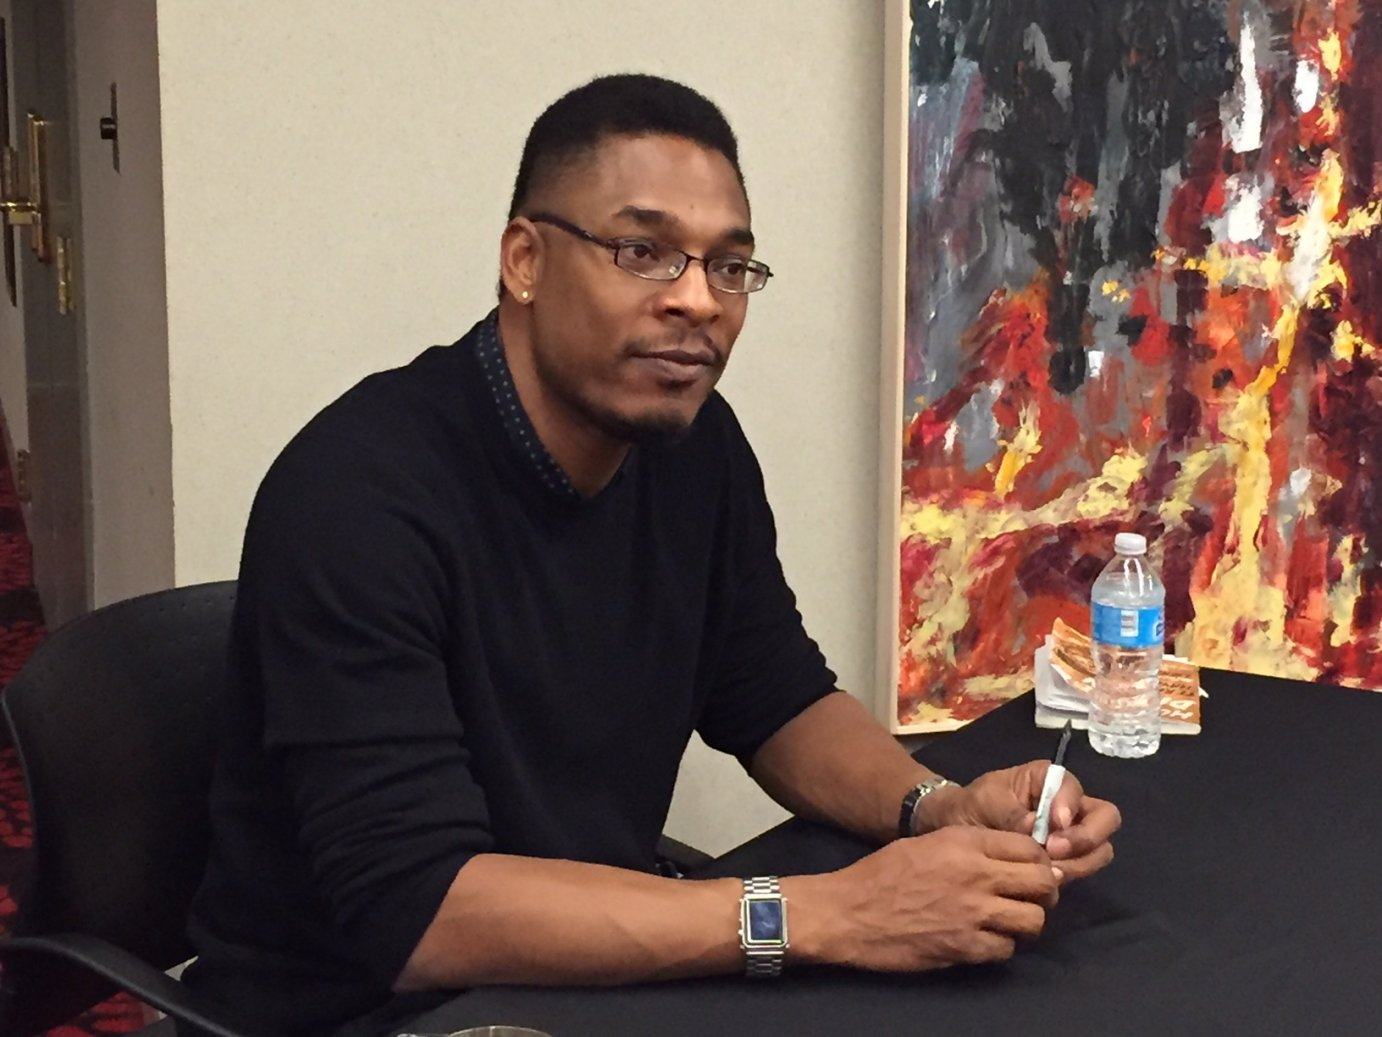 Photo of Terrance Hayes by Kaye McIntyre